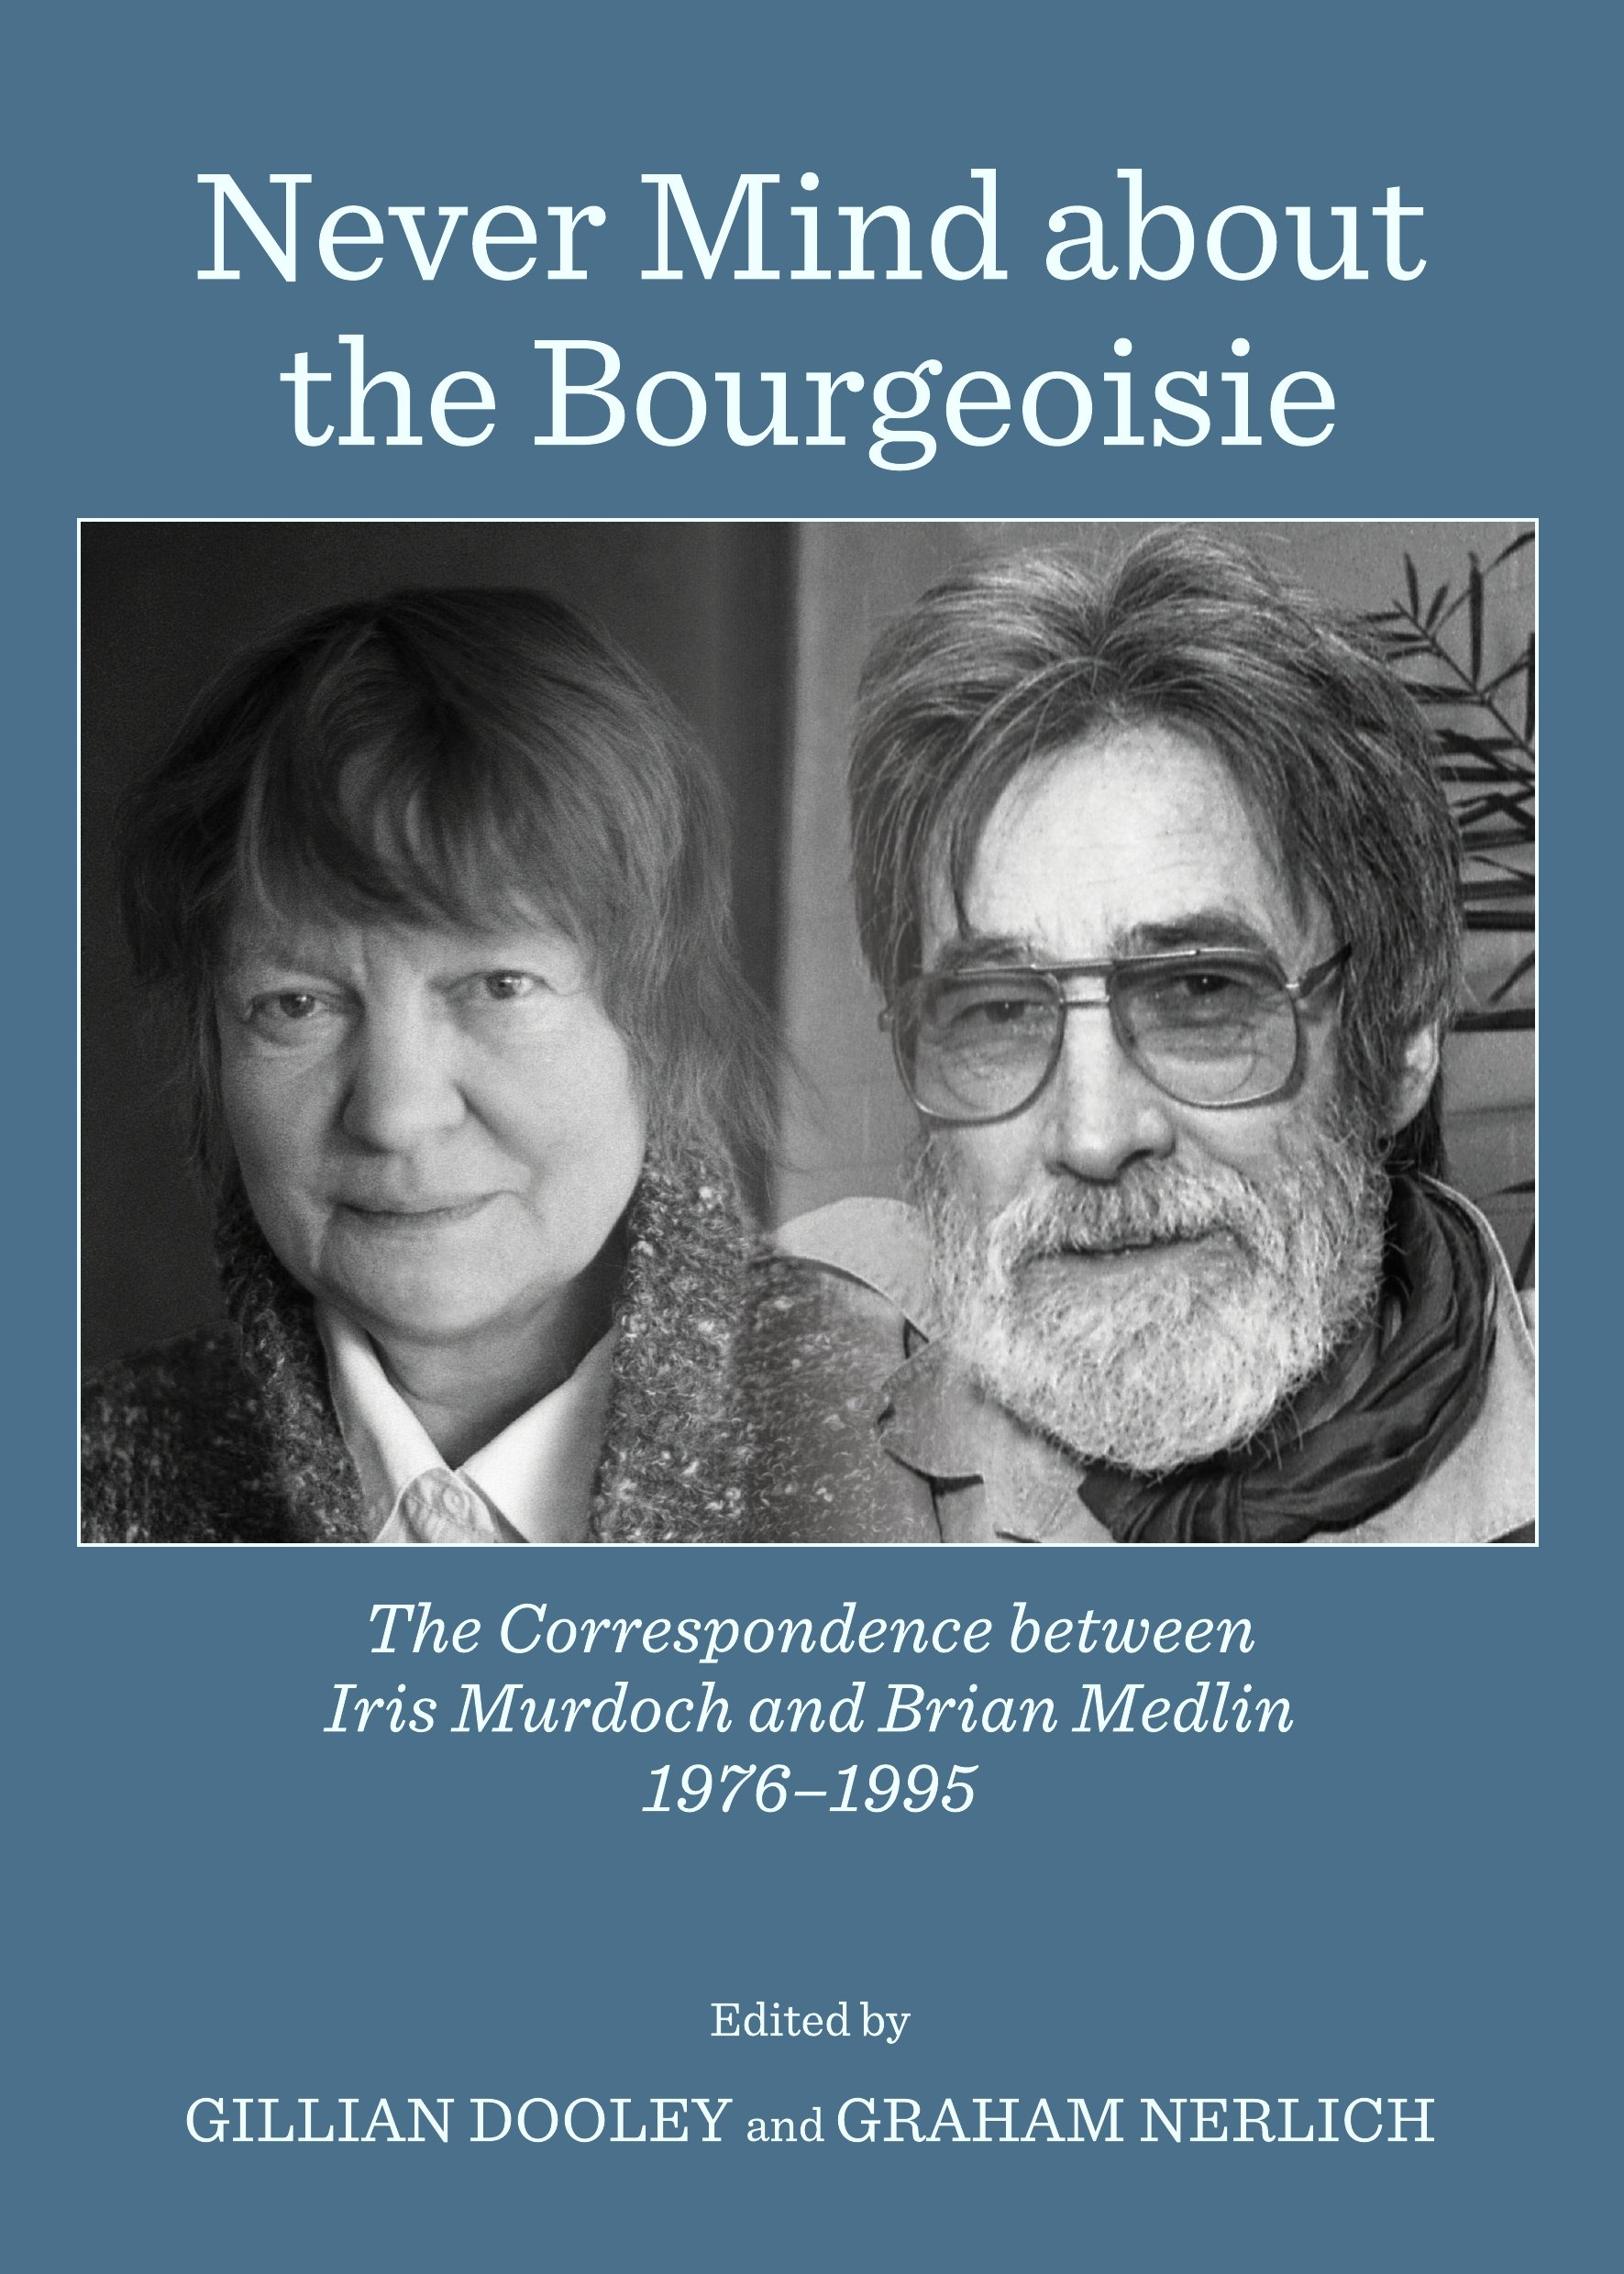 Never Mind about the Bourgeoisie: The Correspondence between Iris Murdoch and Brian Medlin 1976-1995